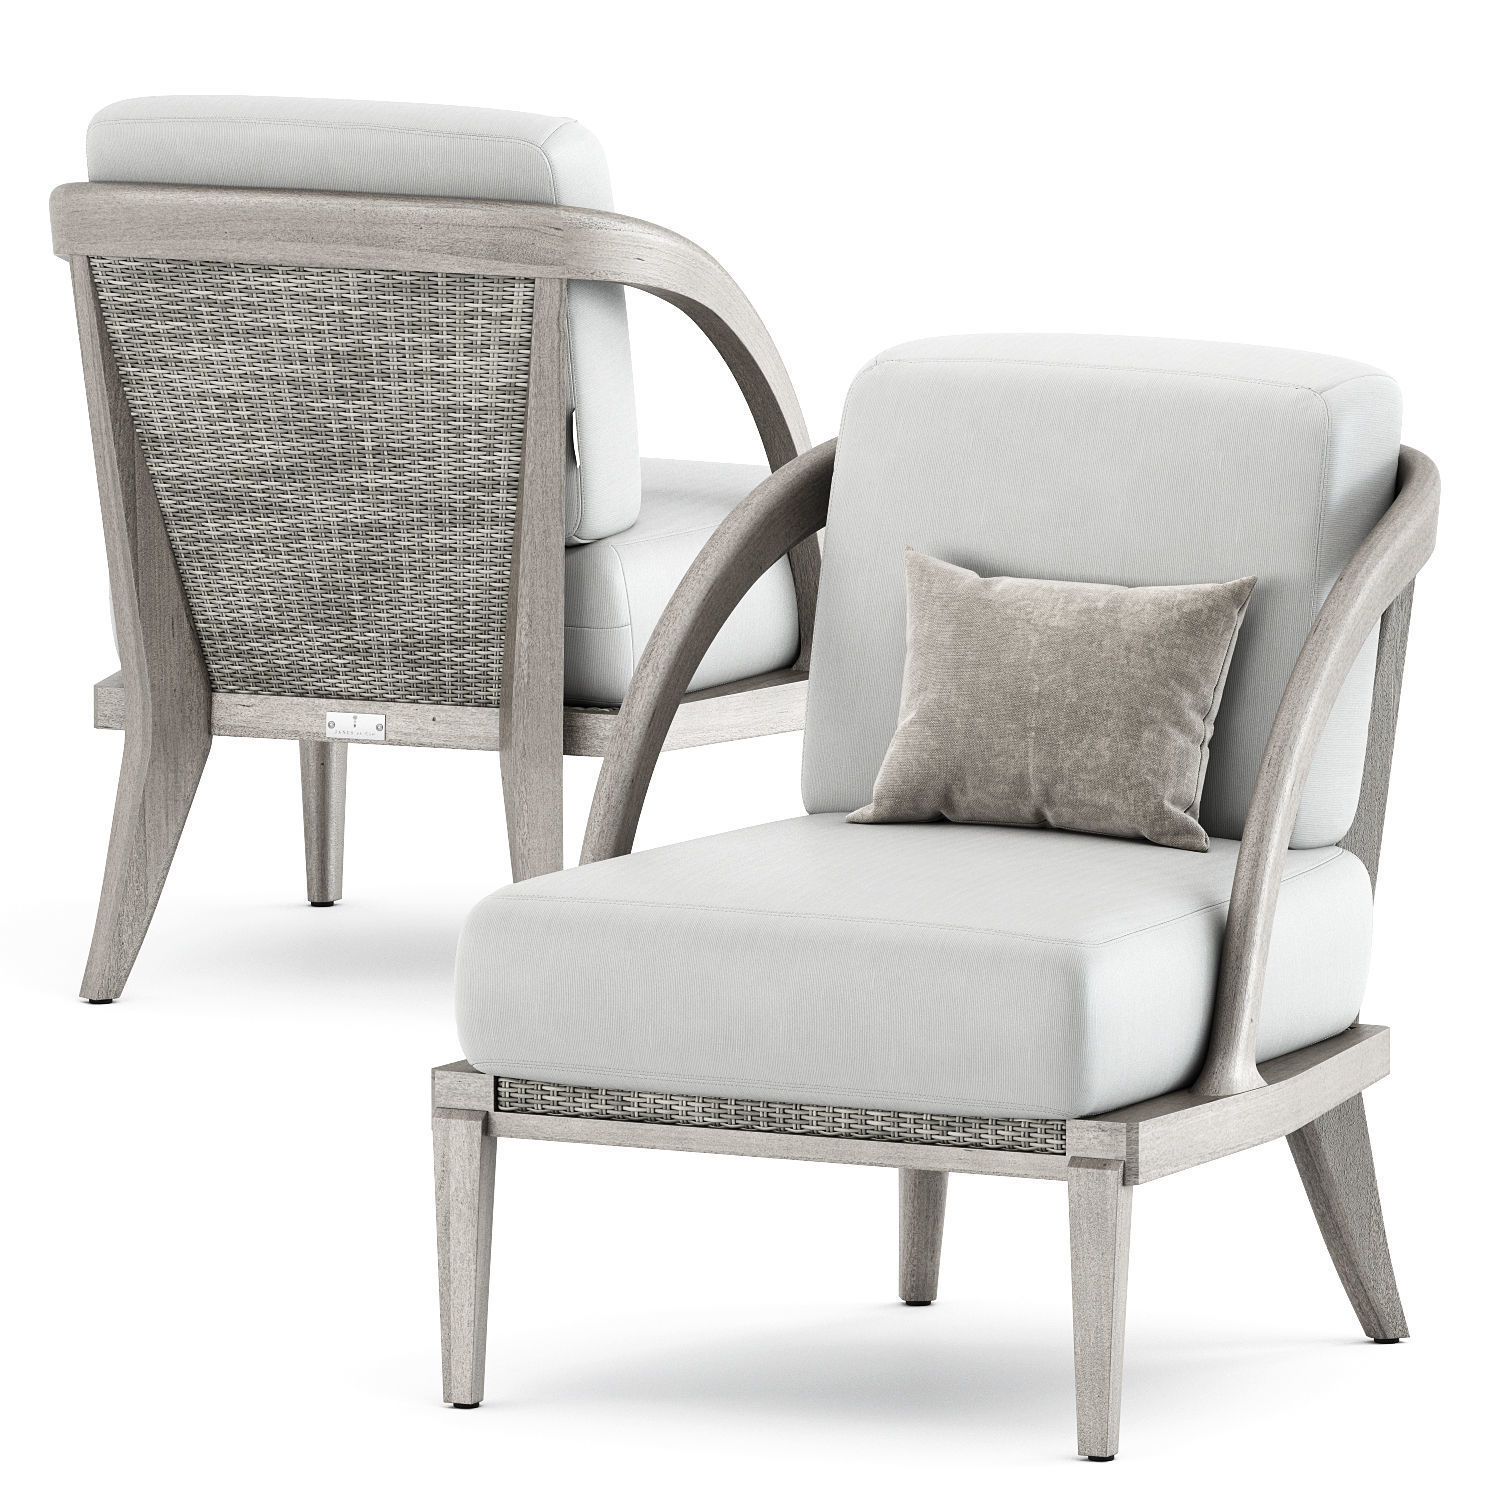 Rock Garden Lounge Chair by Janusetcie